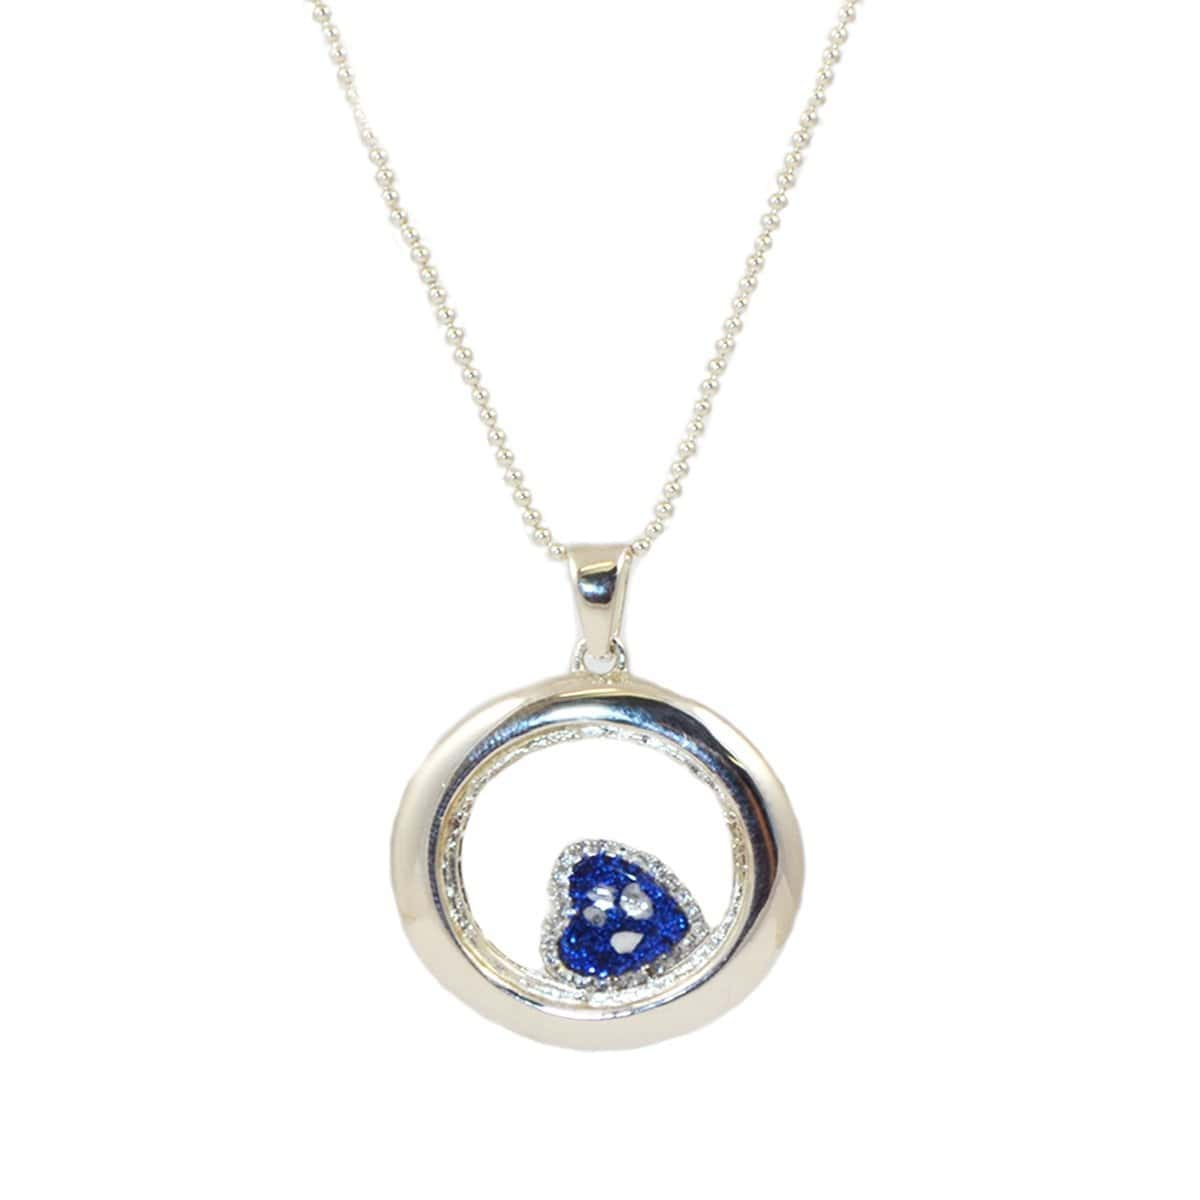 Rhodium Plated Sterling Silver Heart of Love Locket